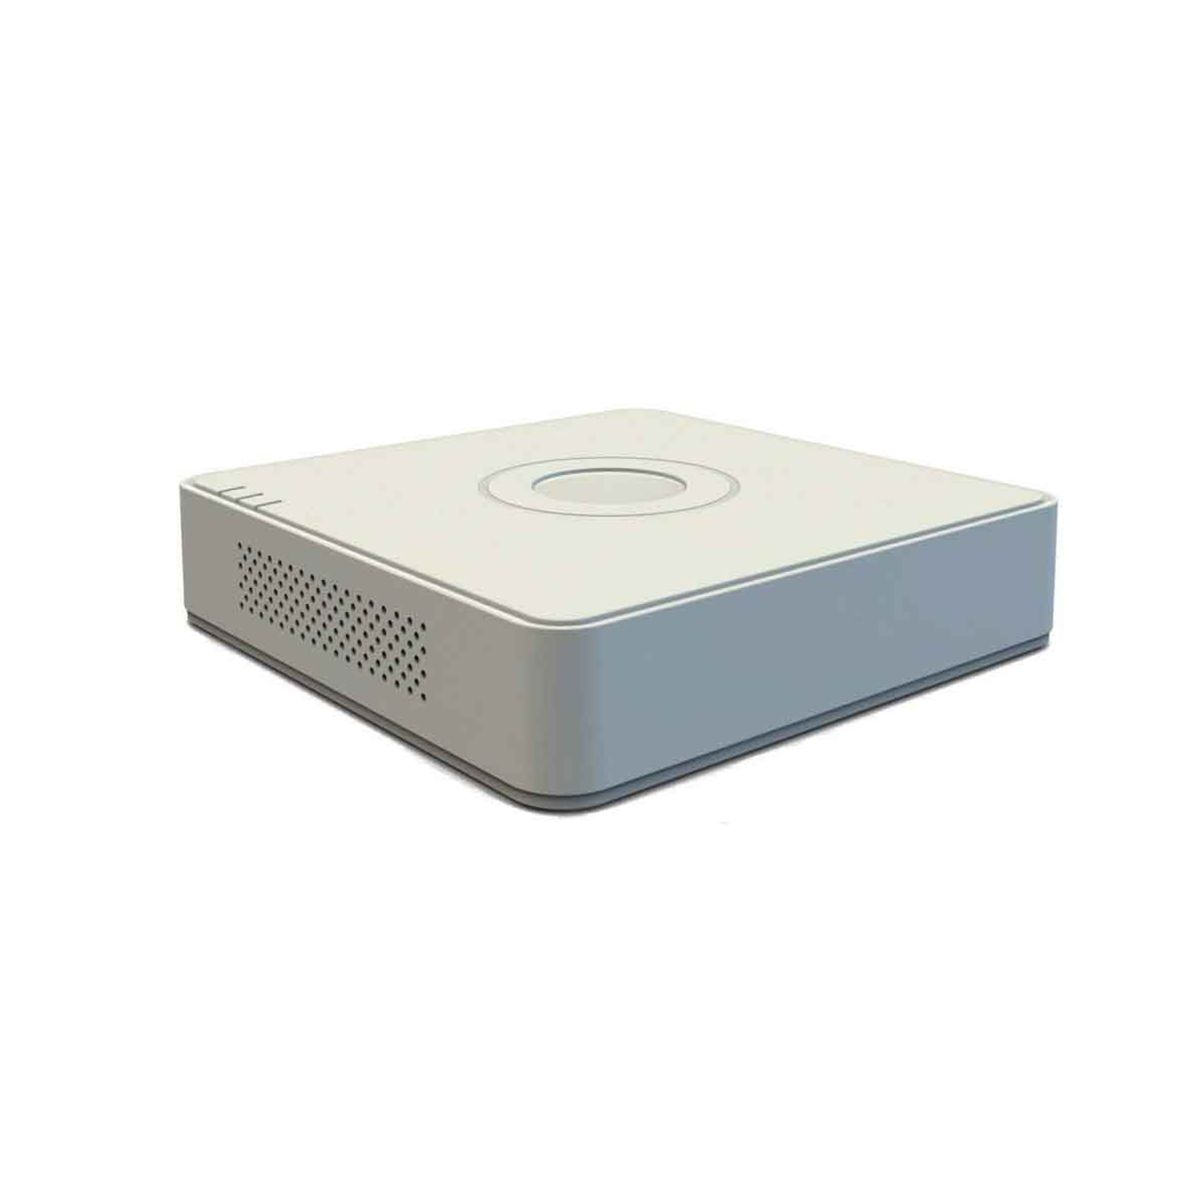 DVR Hikvision 8 canales DS-7108HGHI-F1/N